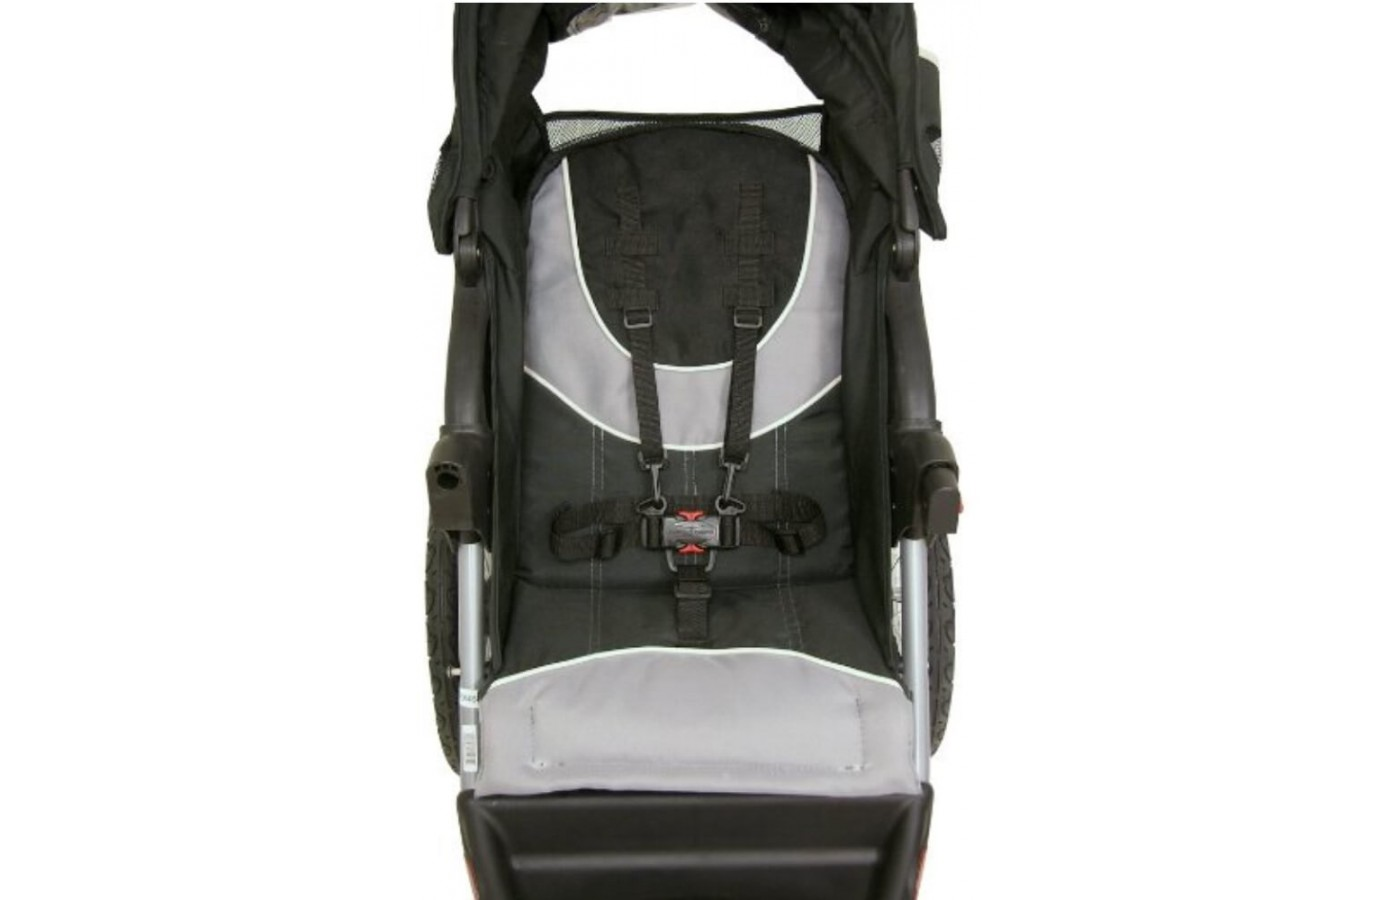 Baby Trend Expedition Jogger Stroller seat